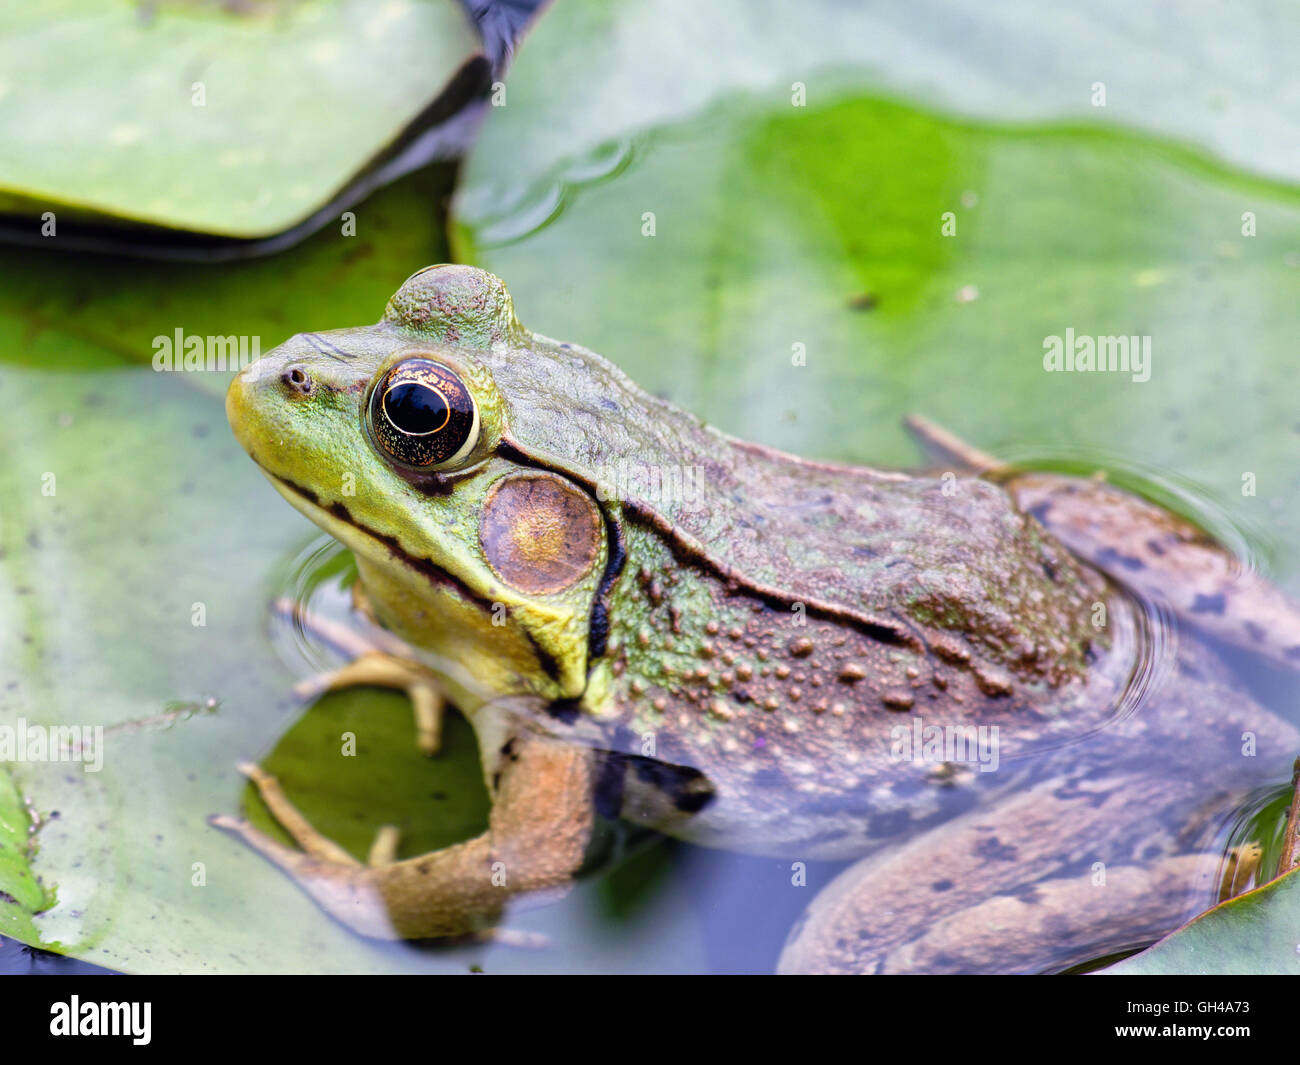 Close Up View of a Frog Sitting on Leaves in a Pond half Submerged - Stock Image